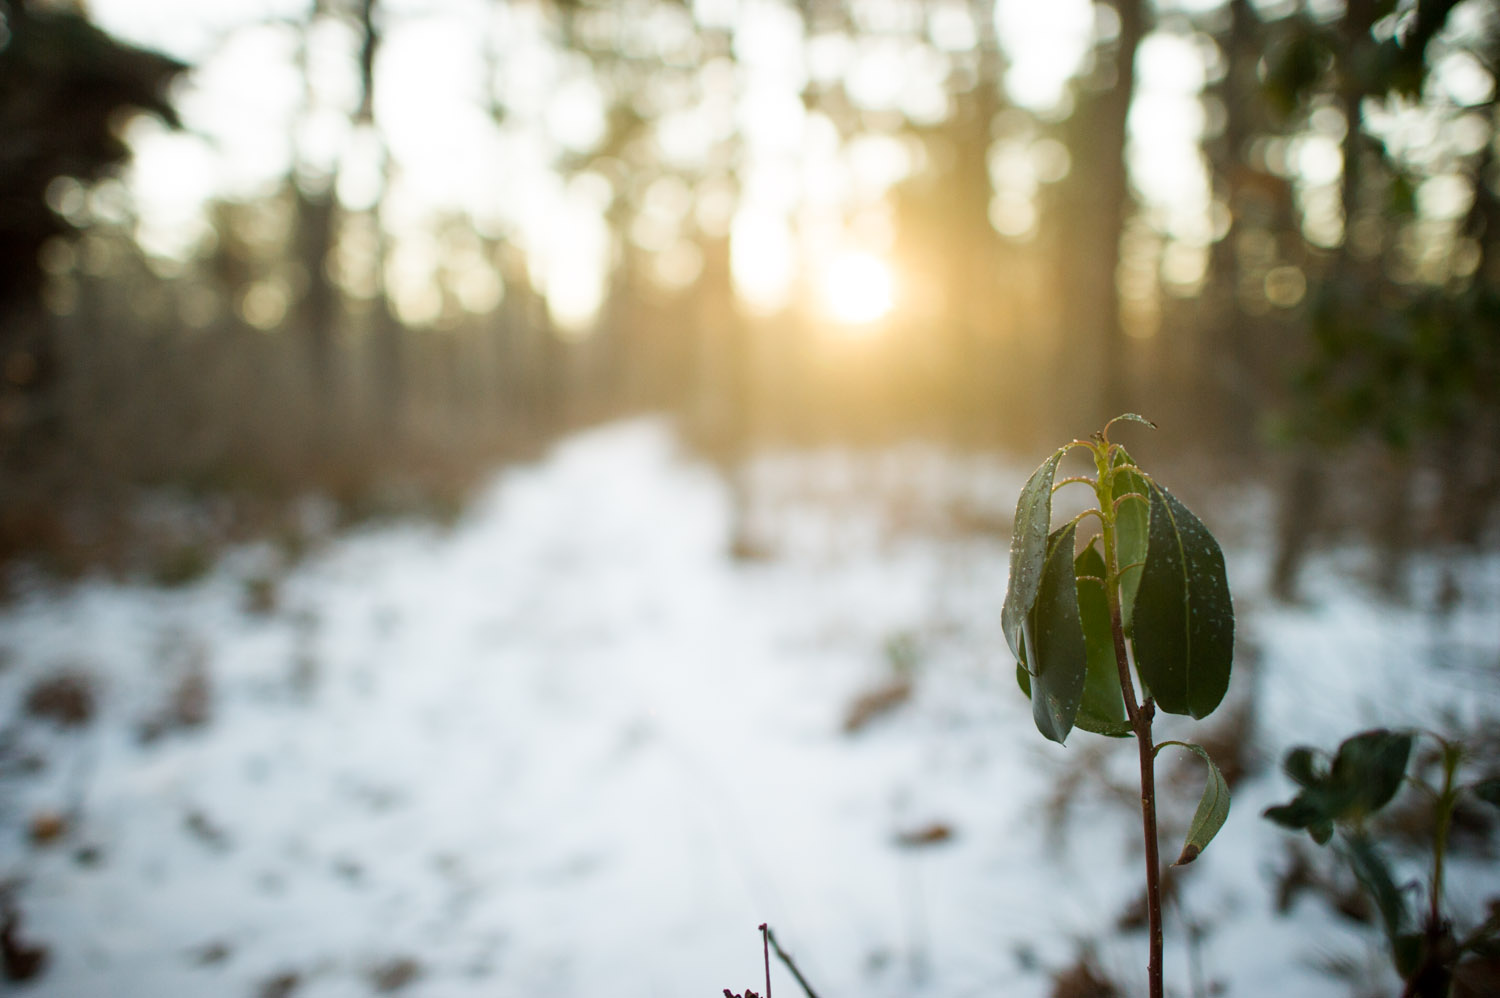 The leaves were drooping pretty good from the cold and bit of frost on them.